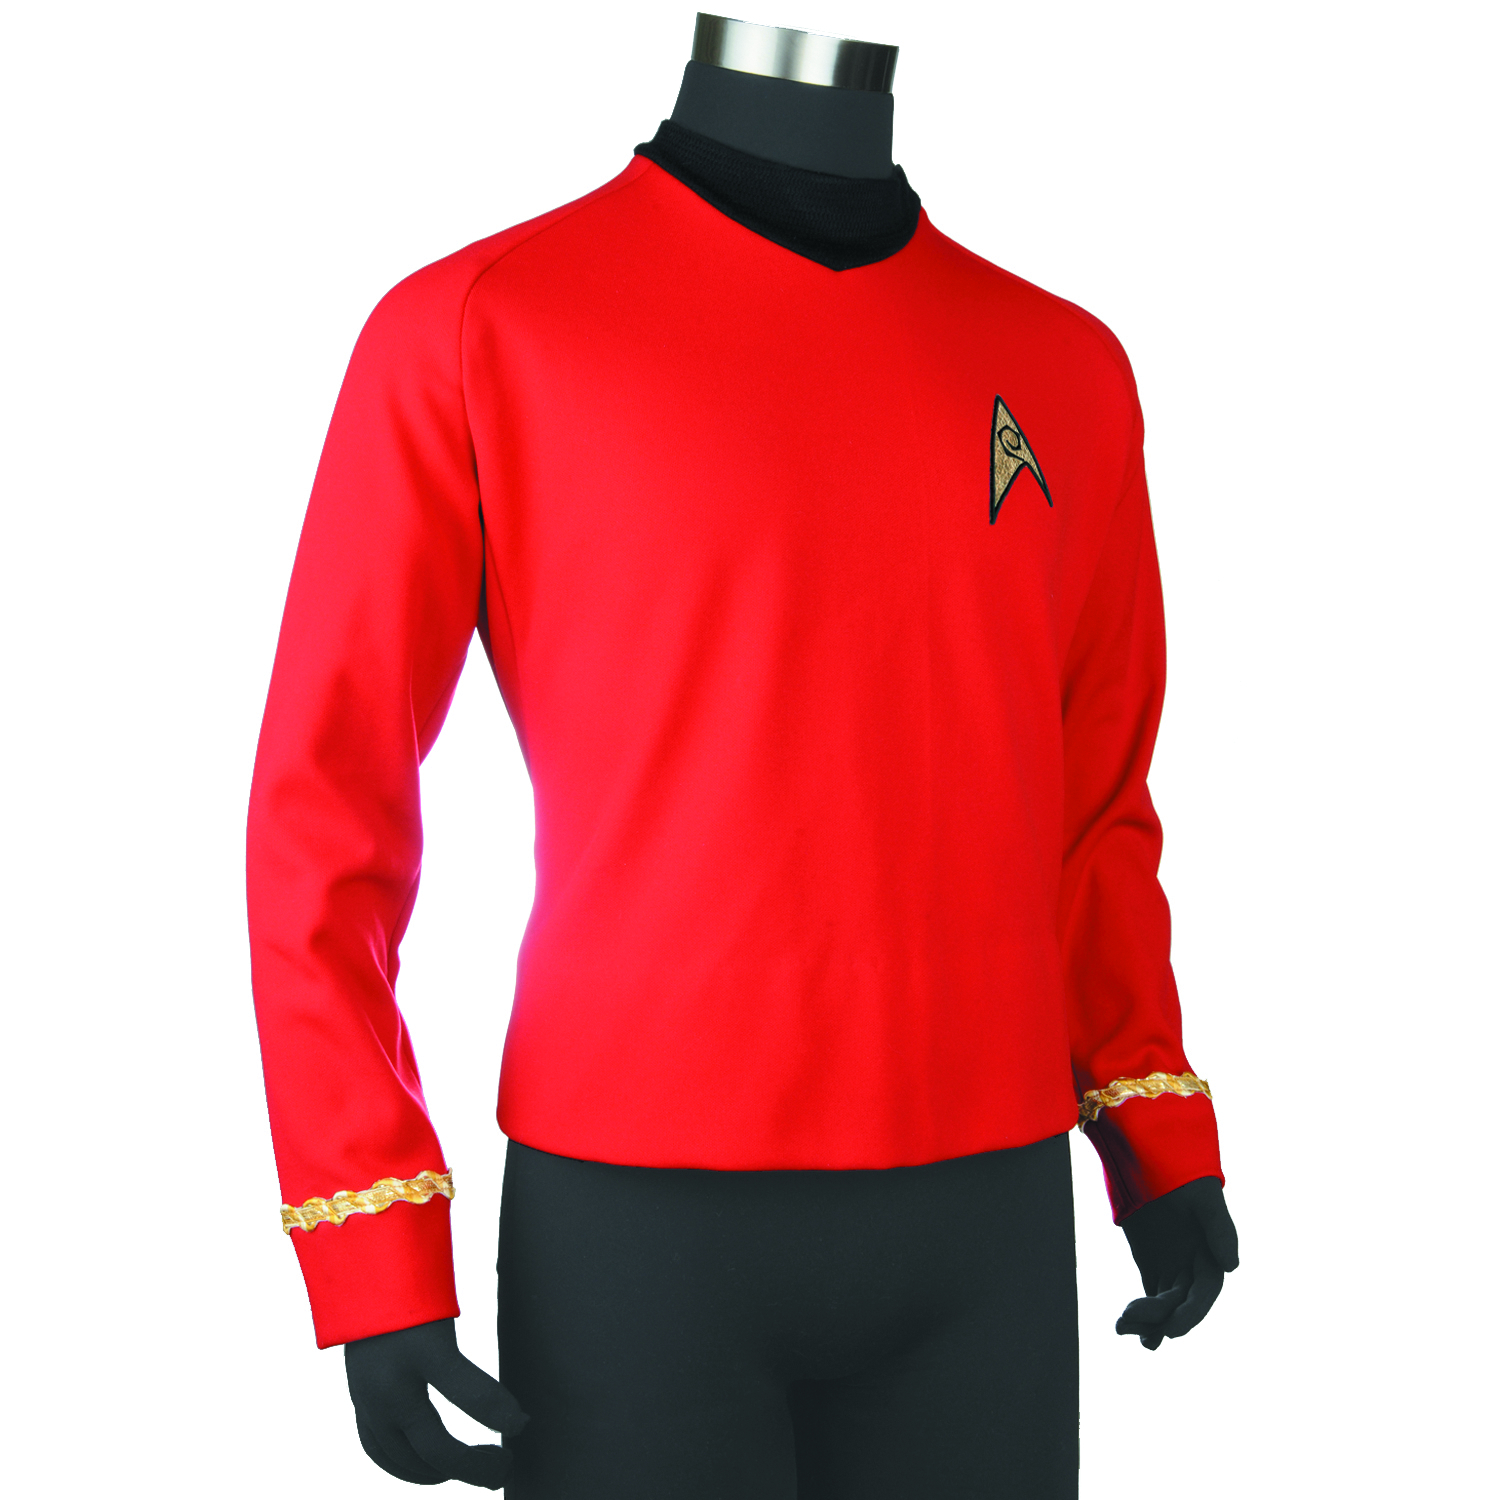 ST TOS RED SHIRT REPLICA TUNIC LG